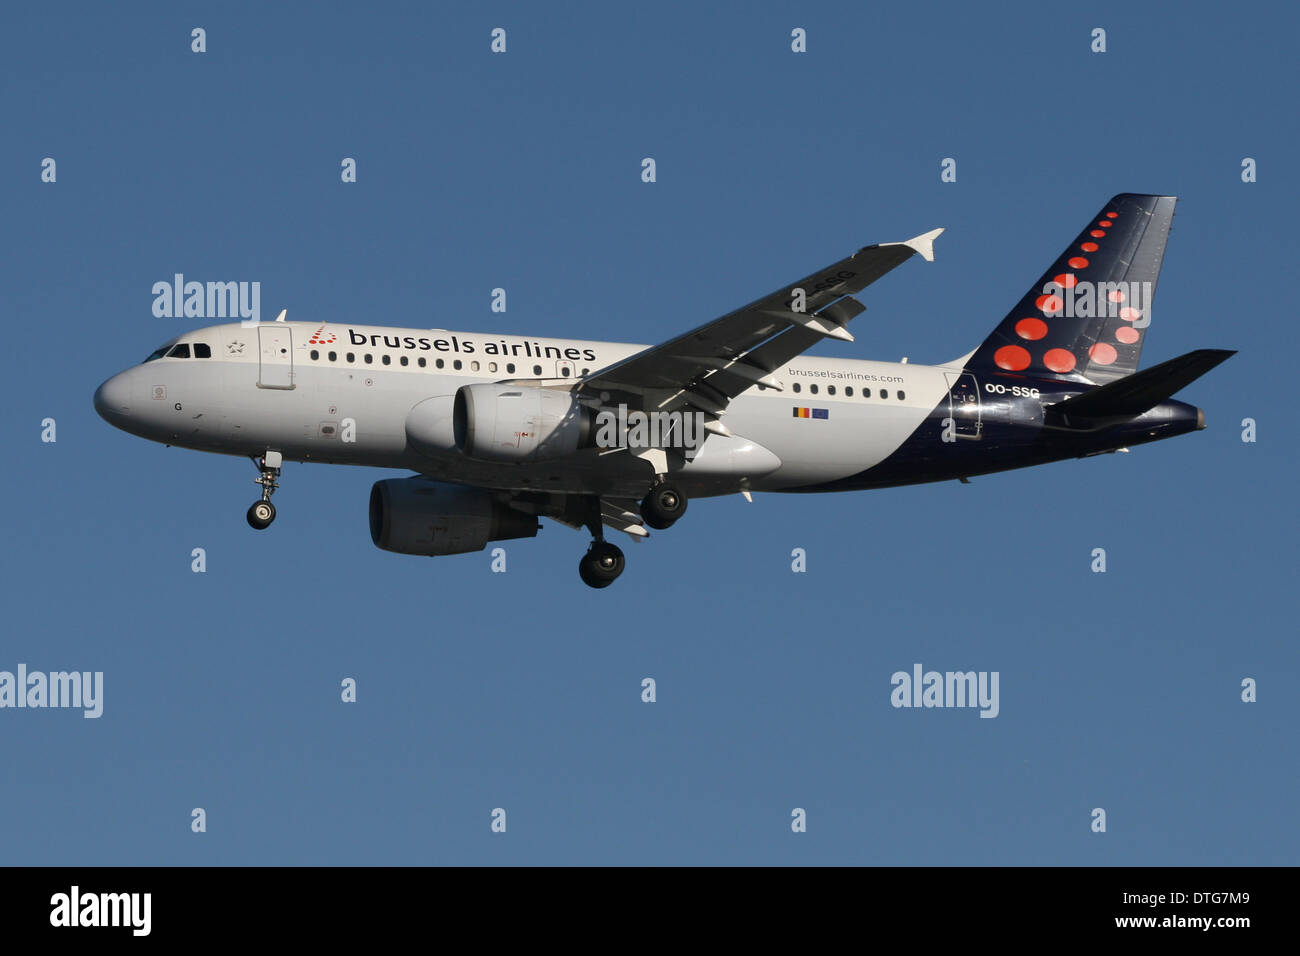 BRUSSELS AIRLINES AIRBUS A319 - Stock Image